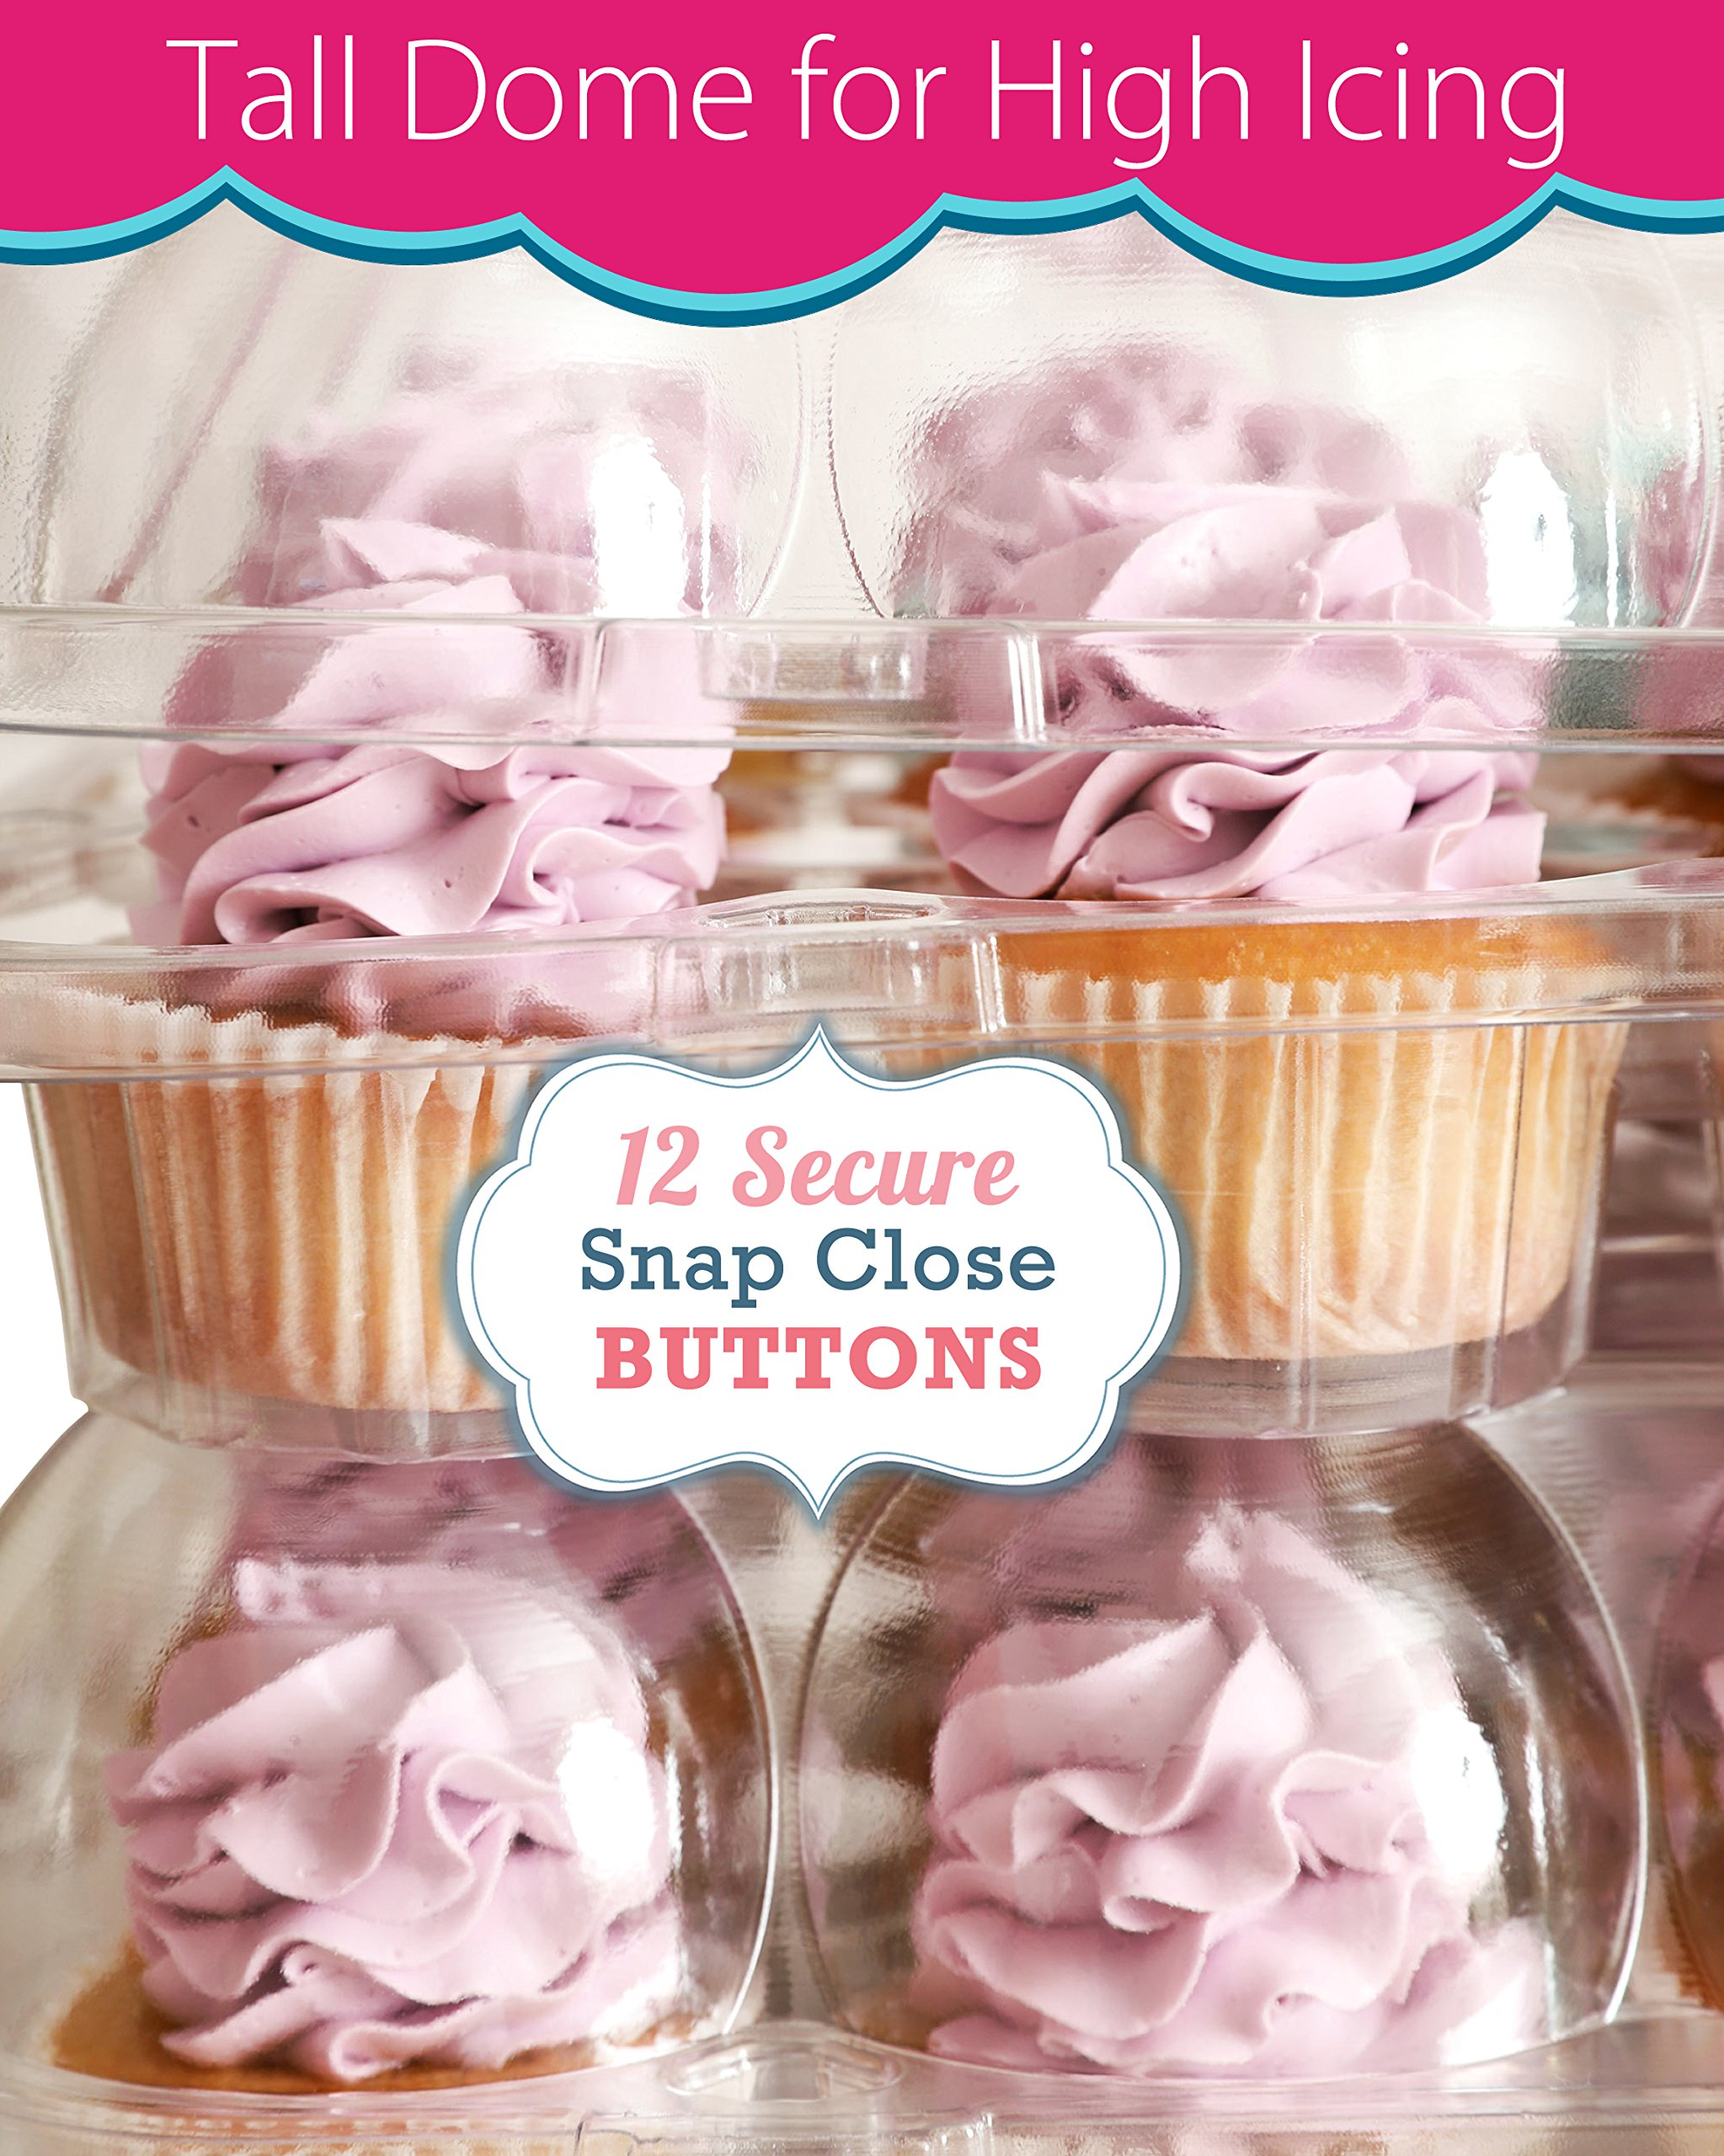 (6 Pack) Fill'nGo Carrier Holds 24 Standard Cupcakes - Ultra Sturdy Cupcake Boxes | Tall Dome Detachable Lid | Clear Plastic Disposable Containers | Storage Tray | Travel Holder | Also Regular Muffins by Cakes of Eden (Image #7)